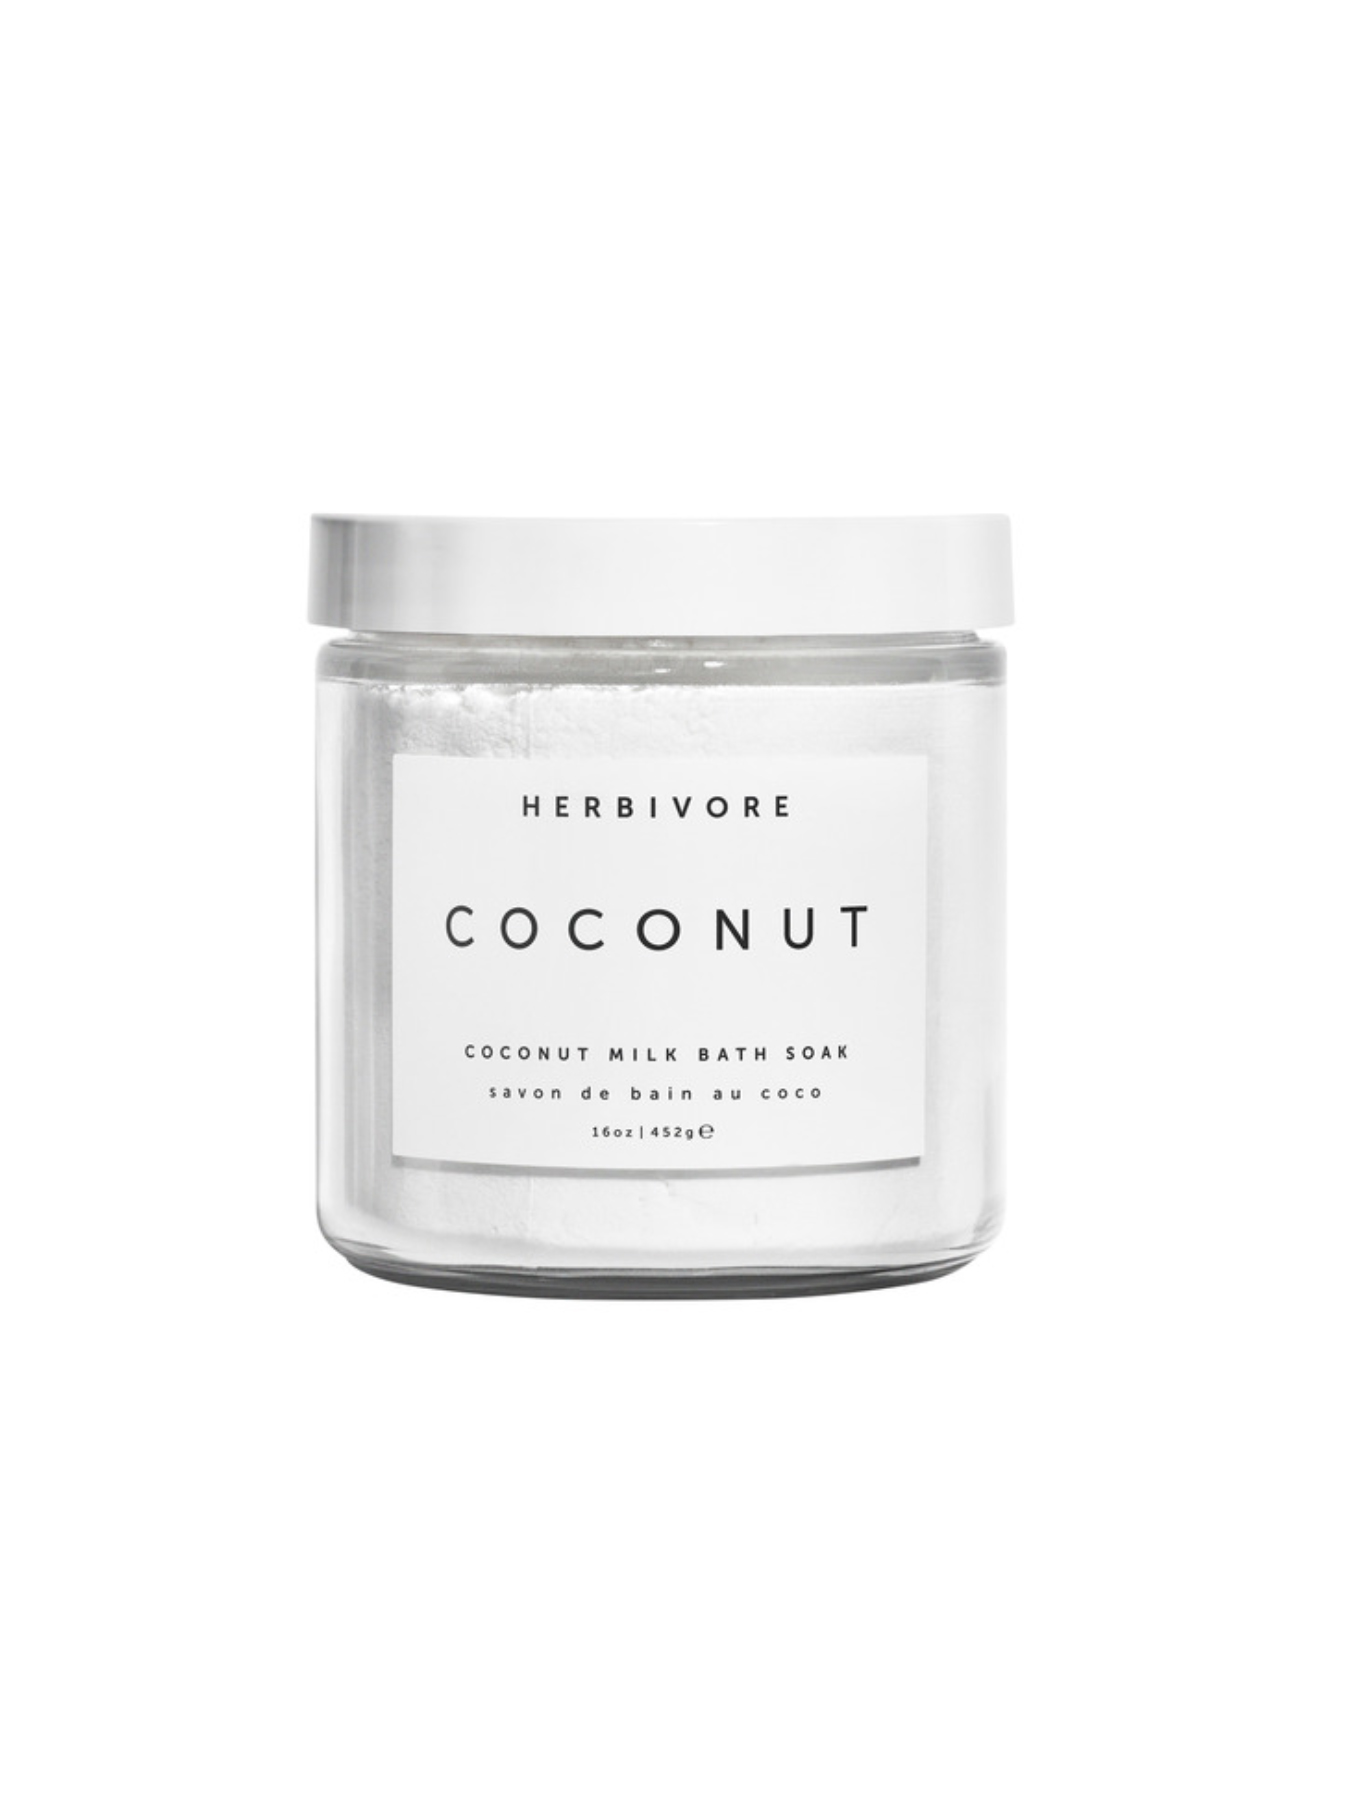 Herbivore coconut bath milk